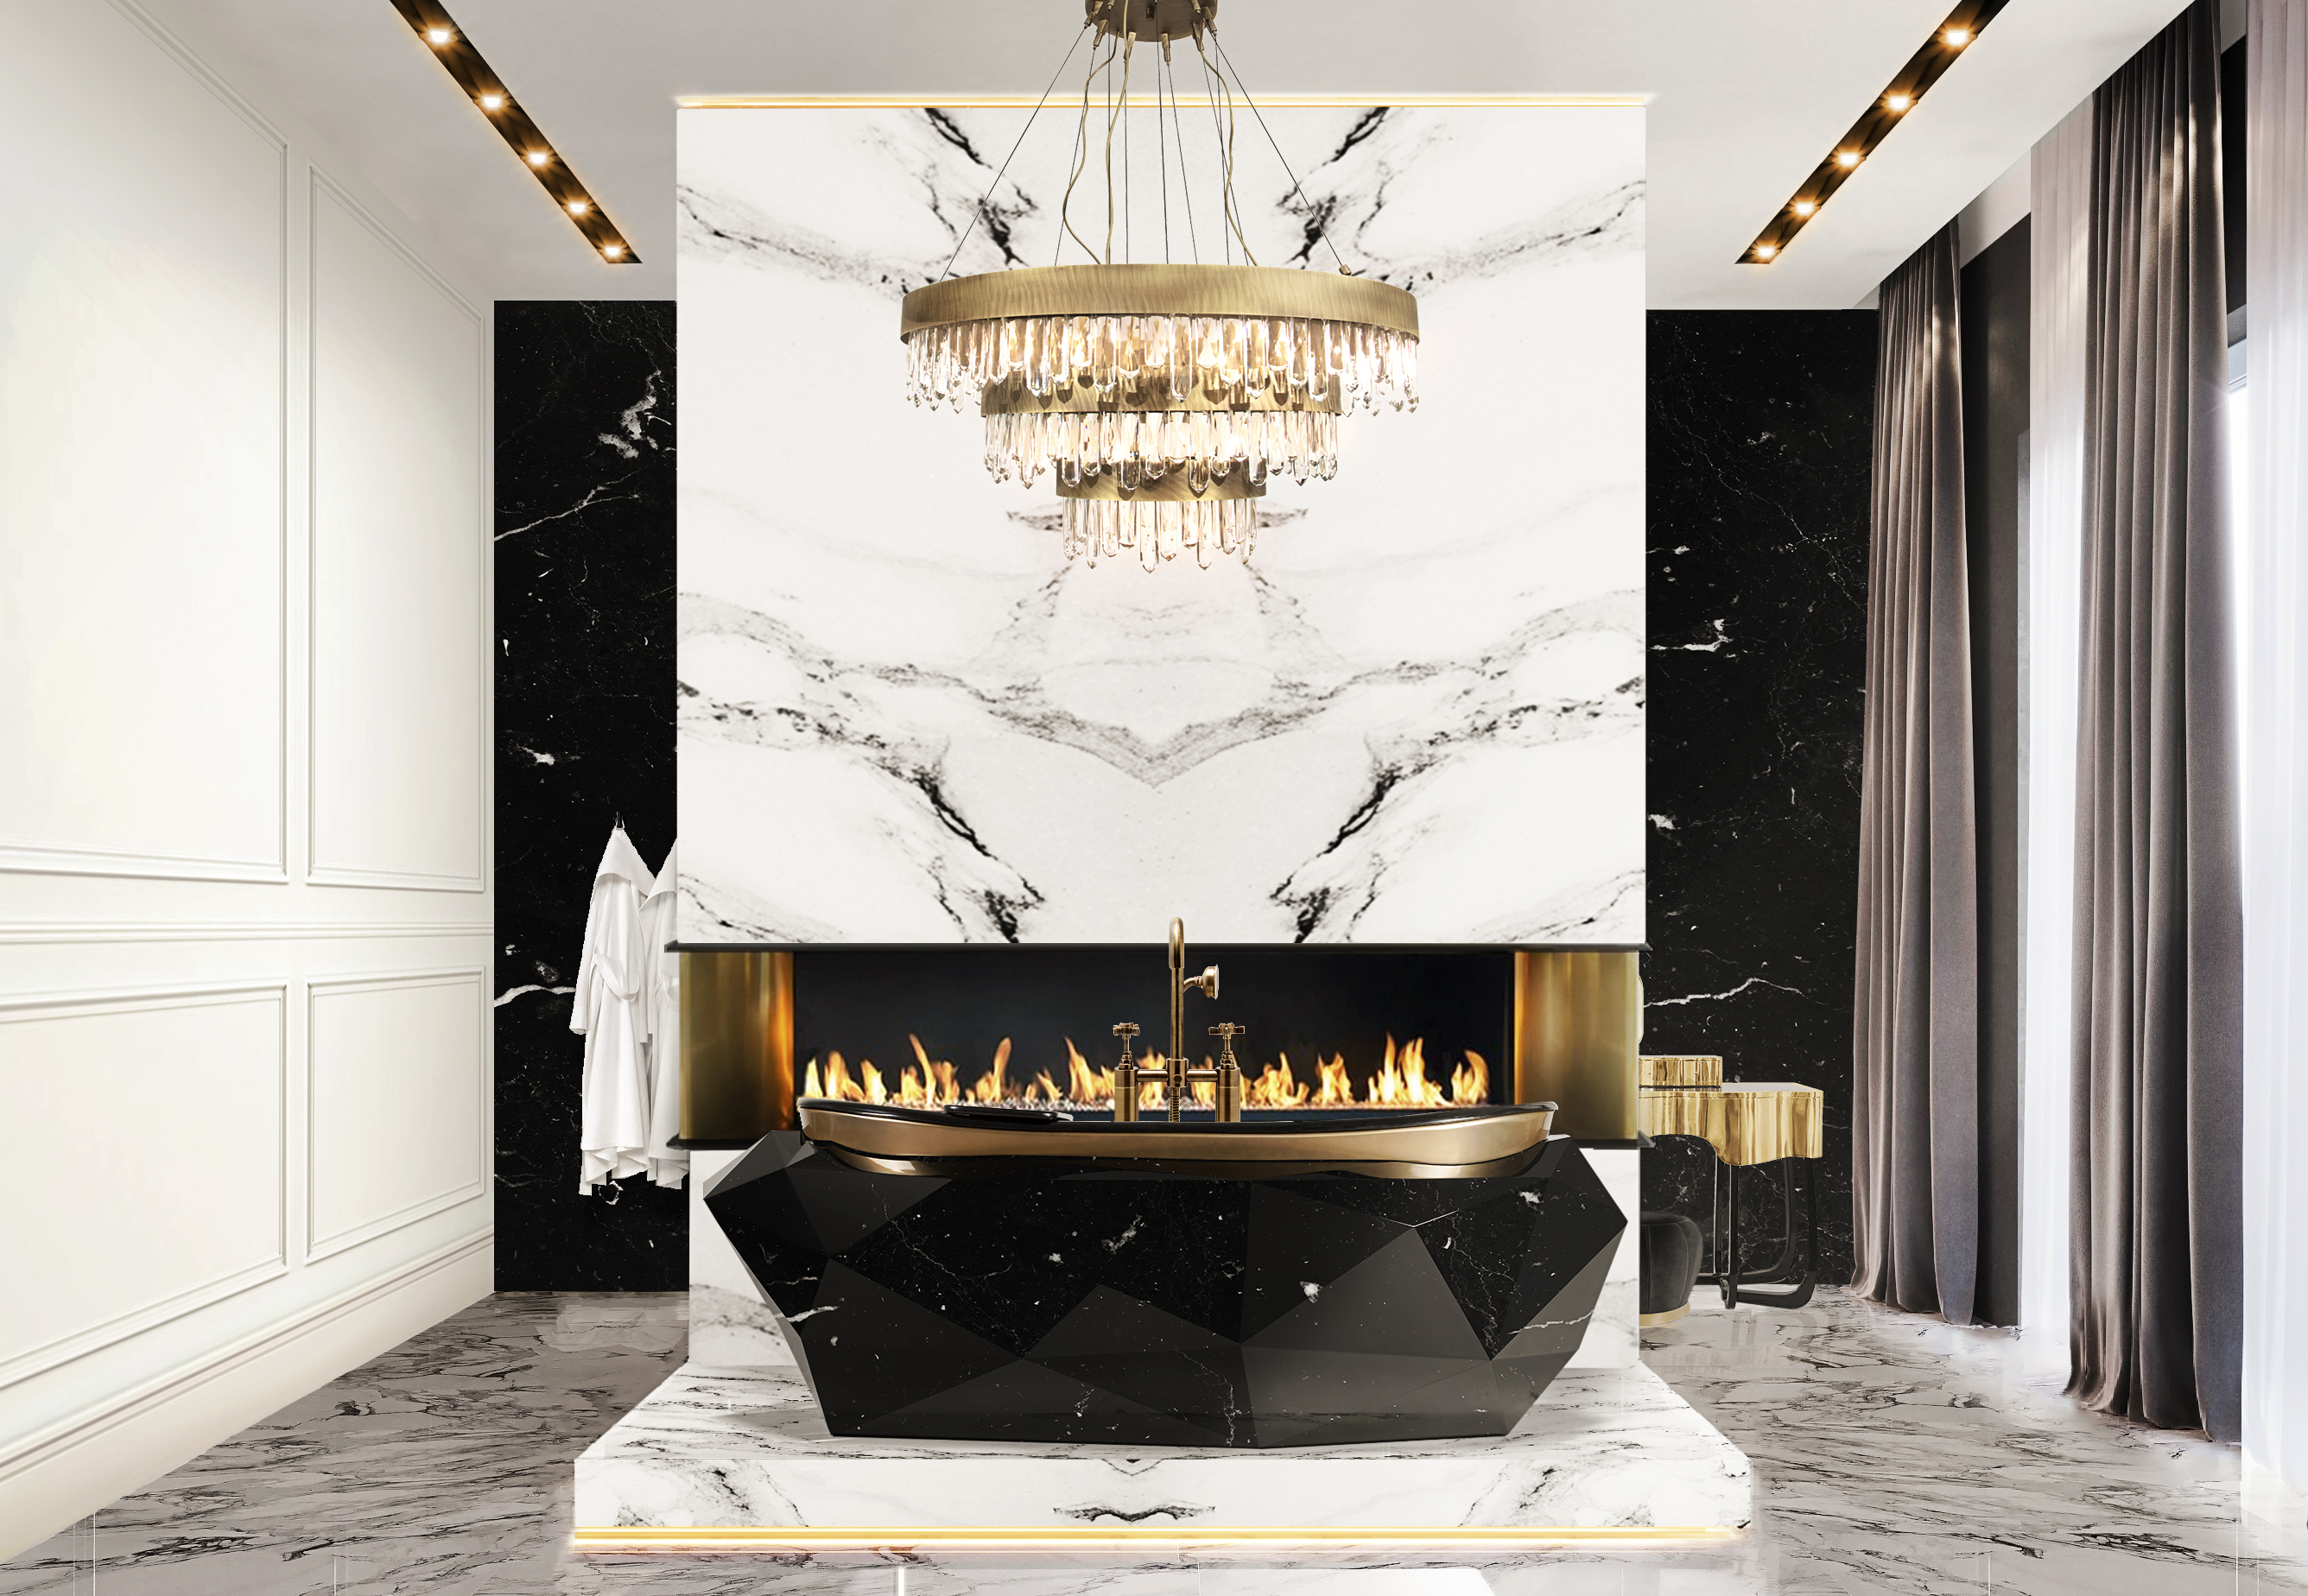 Luxe at home: Maison Valentina presents the latest Diamond Bathtubs Diamond Bathtubs Luxe at home: Maison Valentina presents the latest Diamond Bathtubs diamond faux marble bathtub 21 HR 1